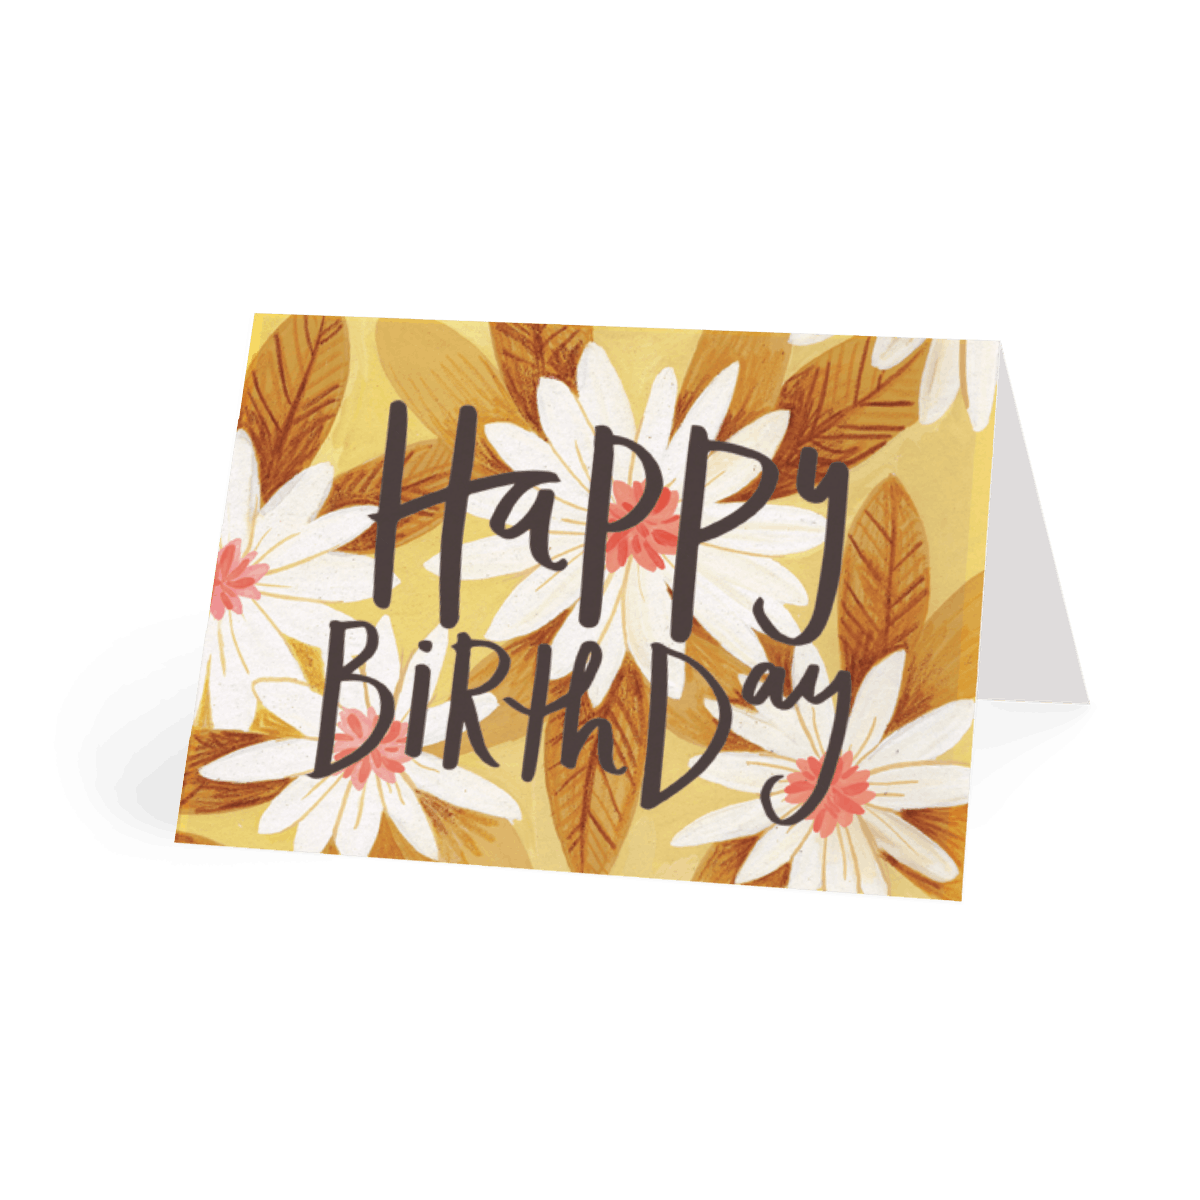 Https%3a%2f%2fwww.papier.com%2fproduct image%2f1430%2f14%2fbirthday daisies 397 front 1453909877.png?ixlib=rb 1.1